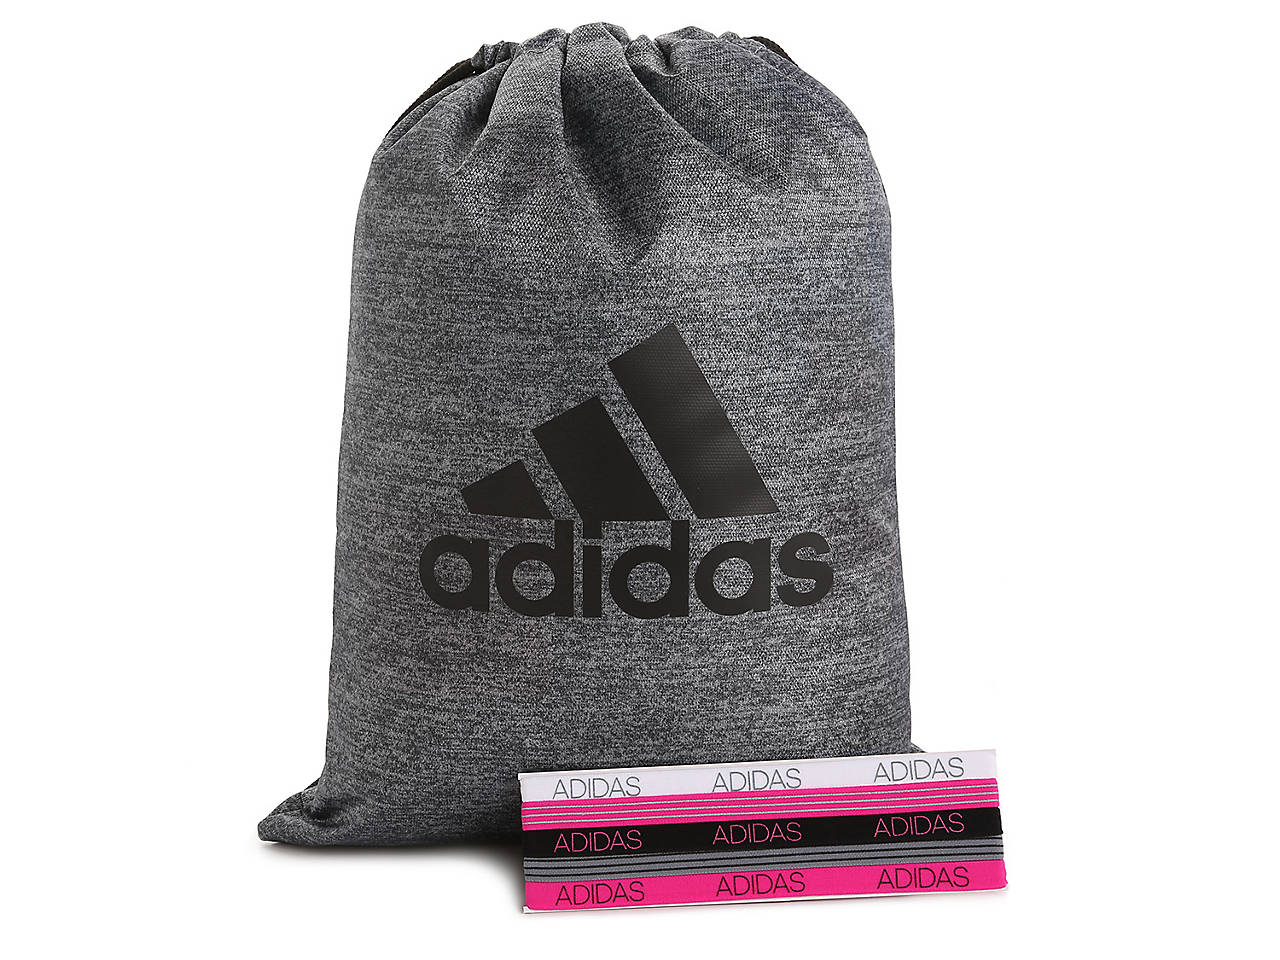 cc056f470dcb DSW Exclusive Free Adidas Drawstring Bag with Headbands Women s ...